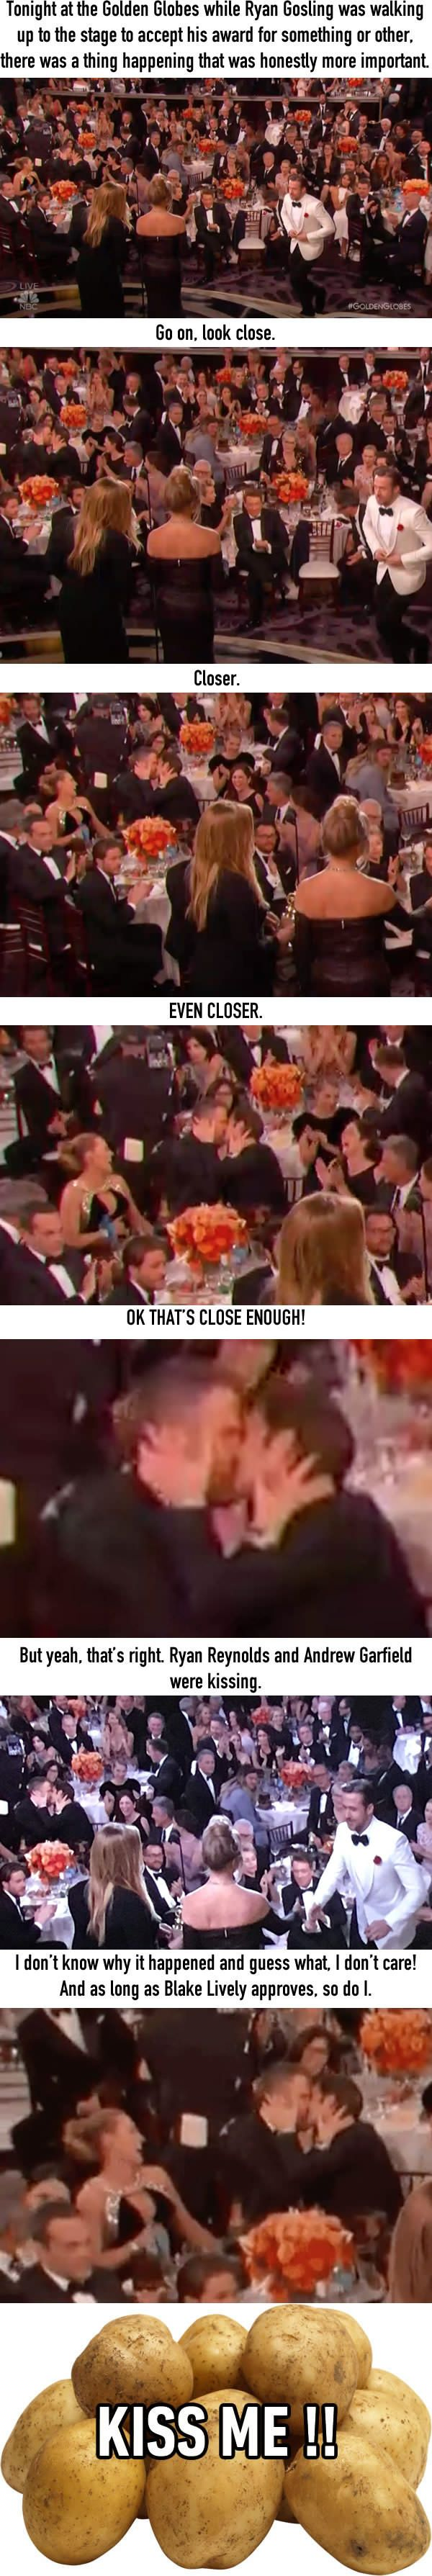 While Ryan Gosling Was Winning, Ryan Reynolds And Andrew Garfield Were Kissing